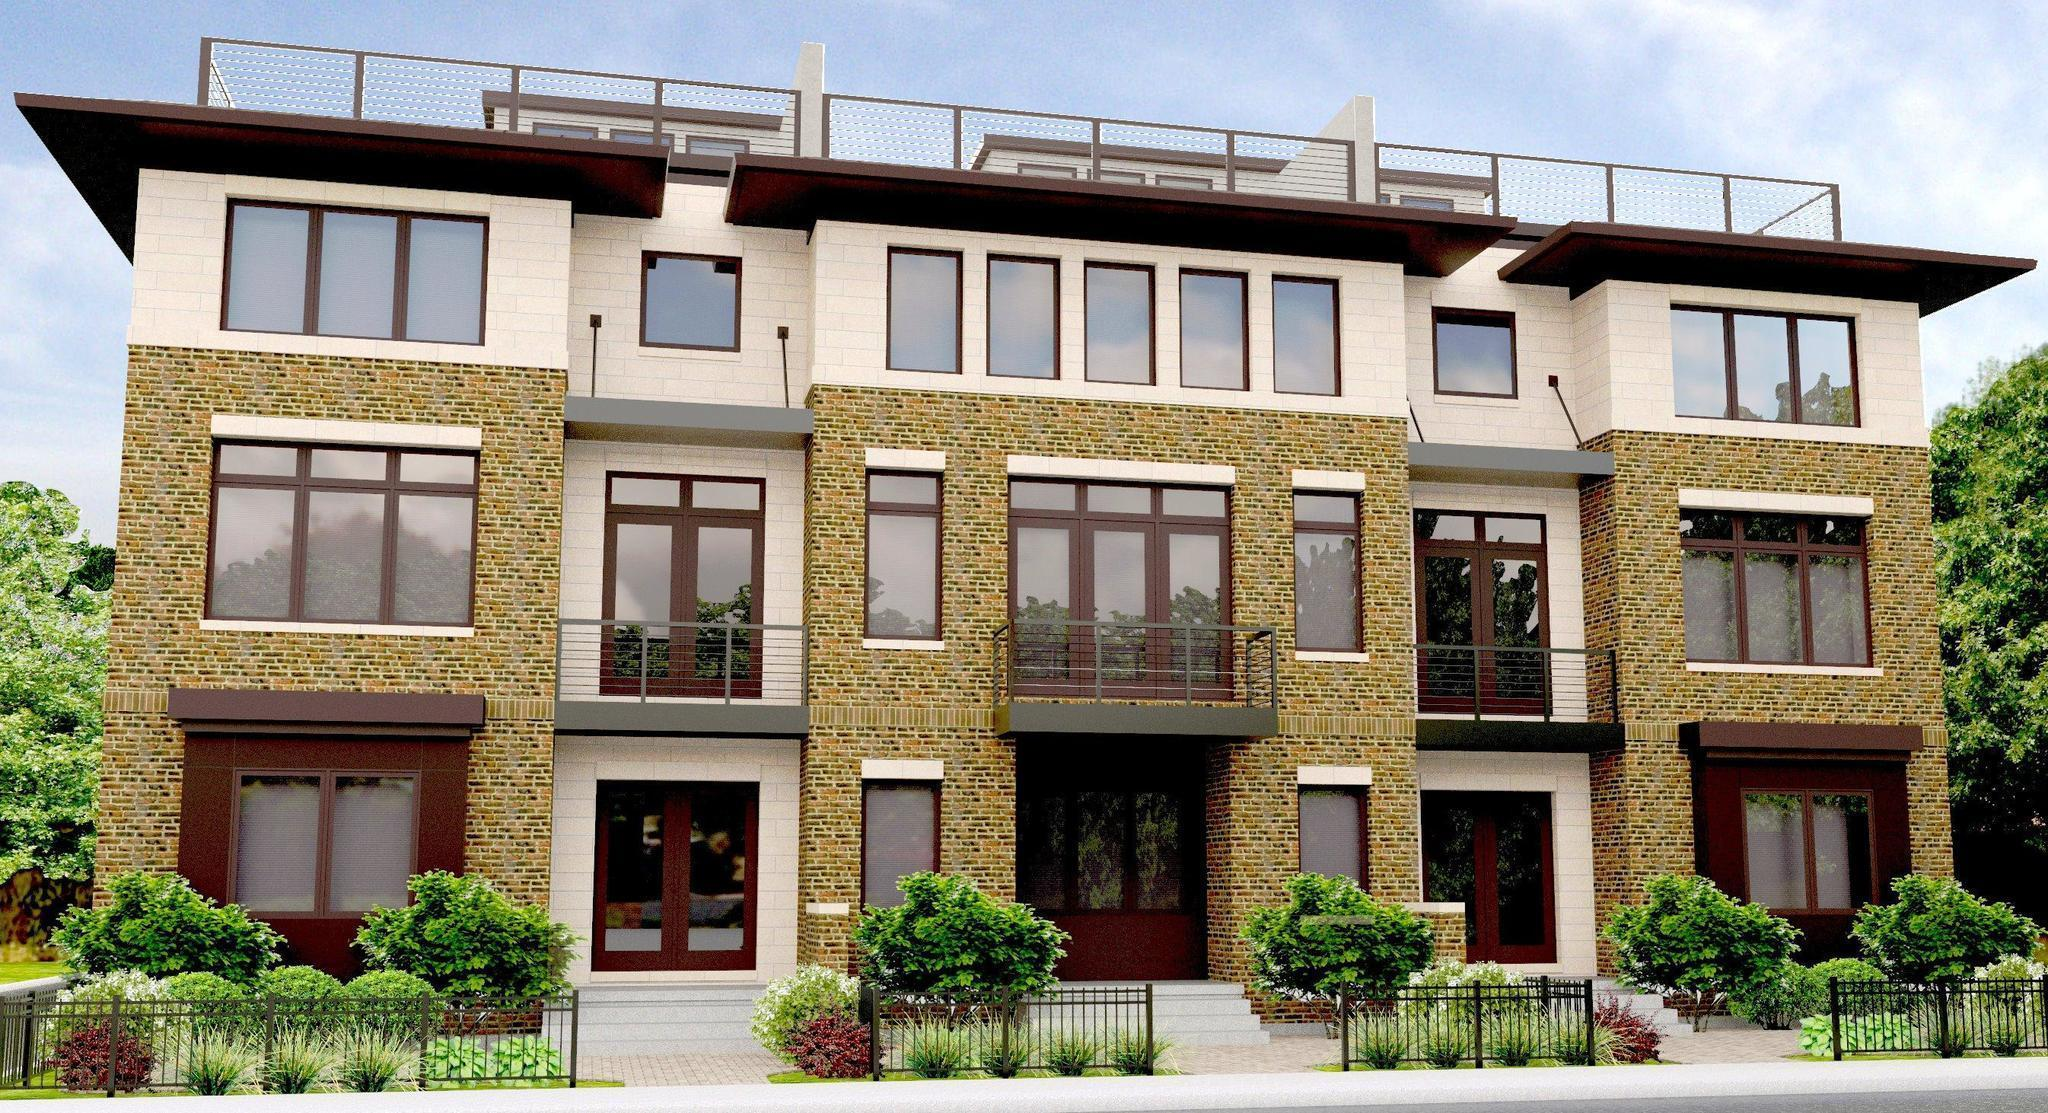 Naperville Council Oks Pricey Town Homes Near Downtown